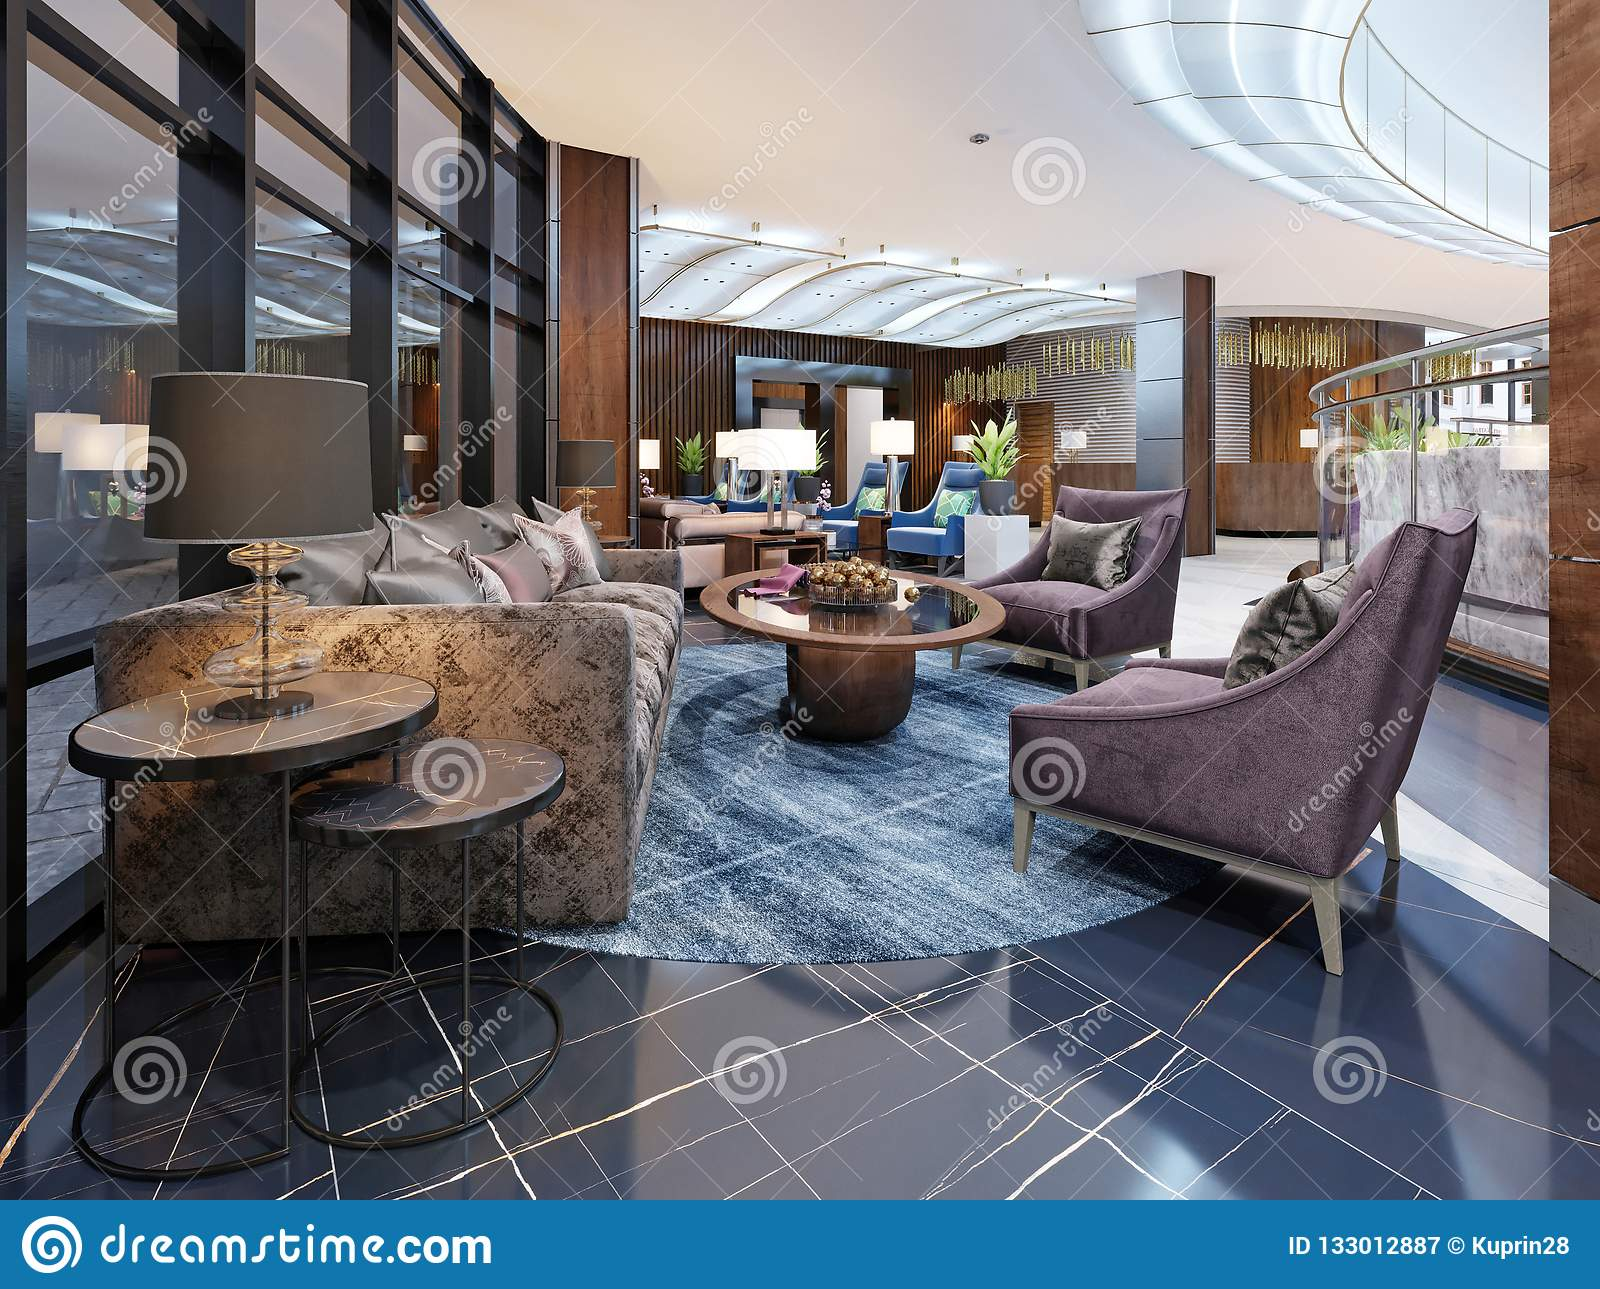 Contemporary Hotel Interior Design Hotel Lobby Rest Area